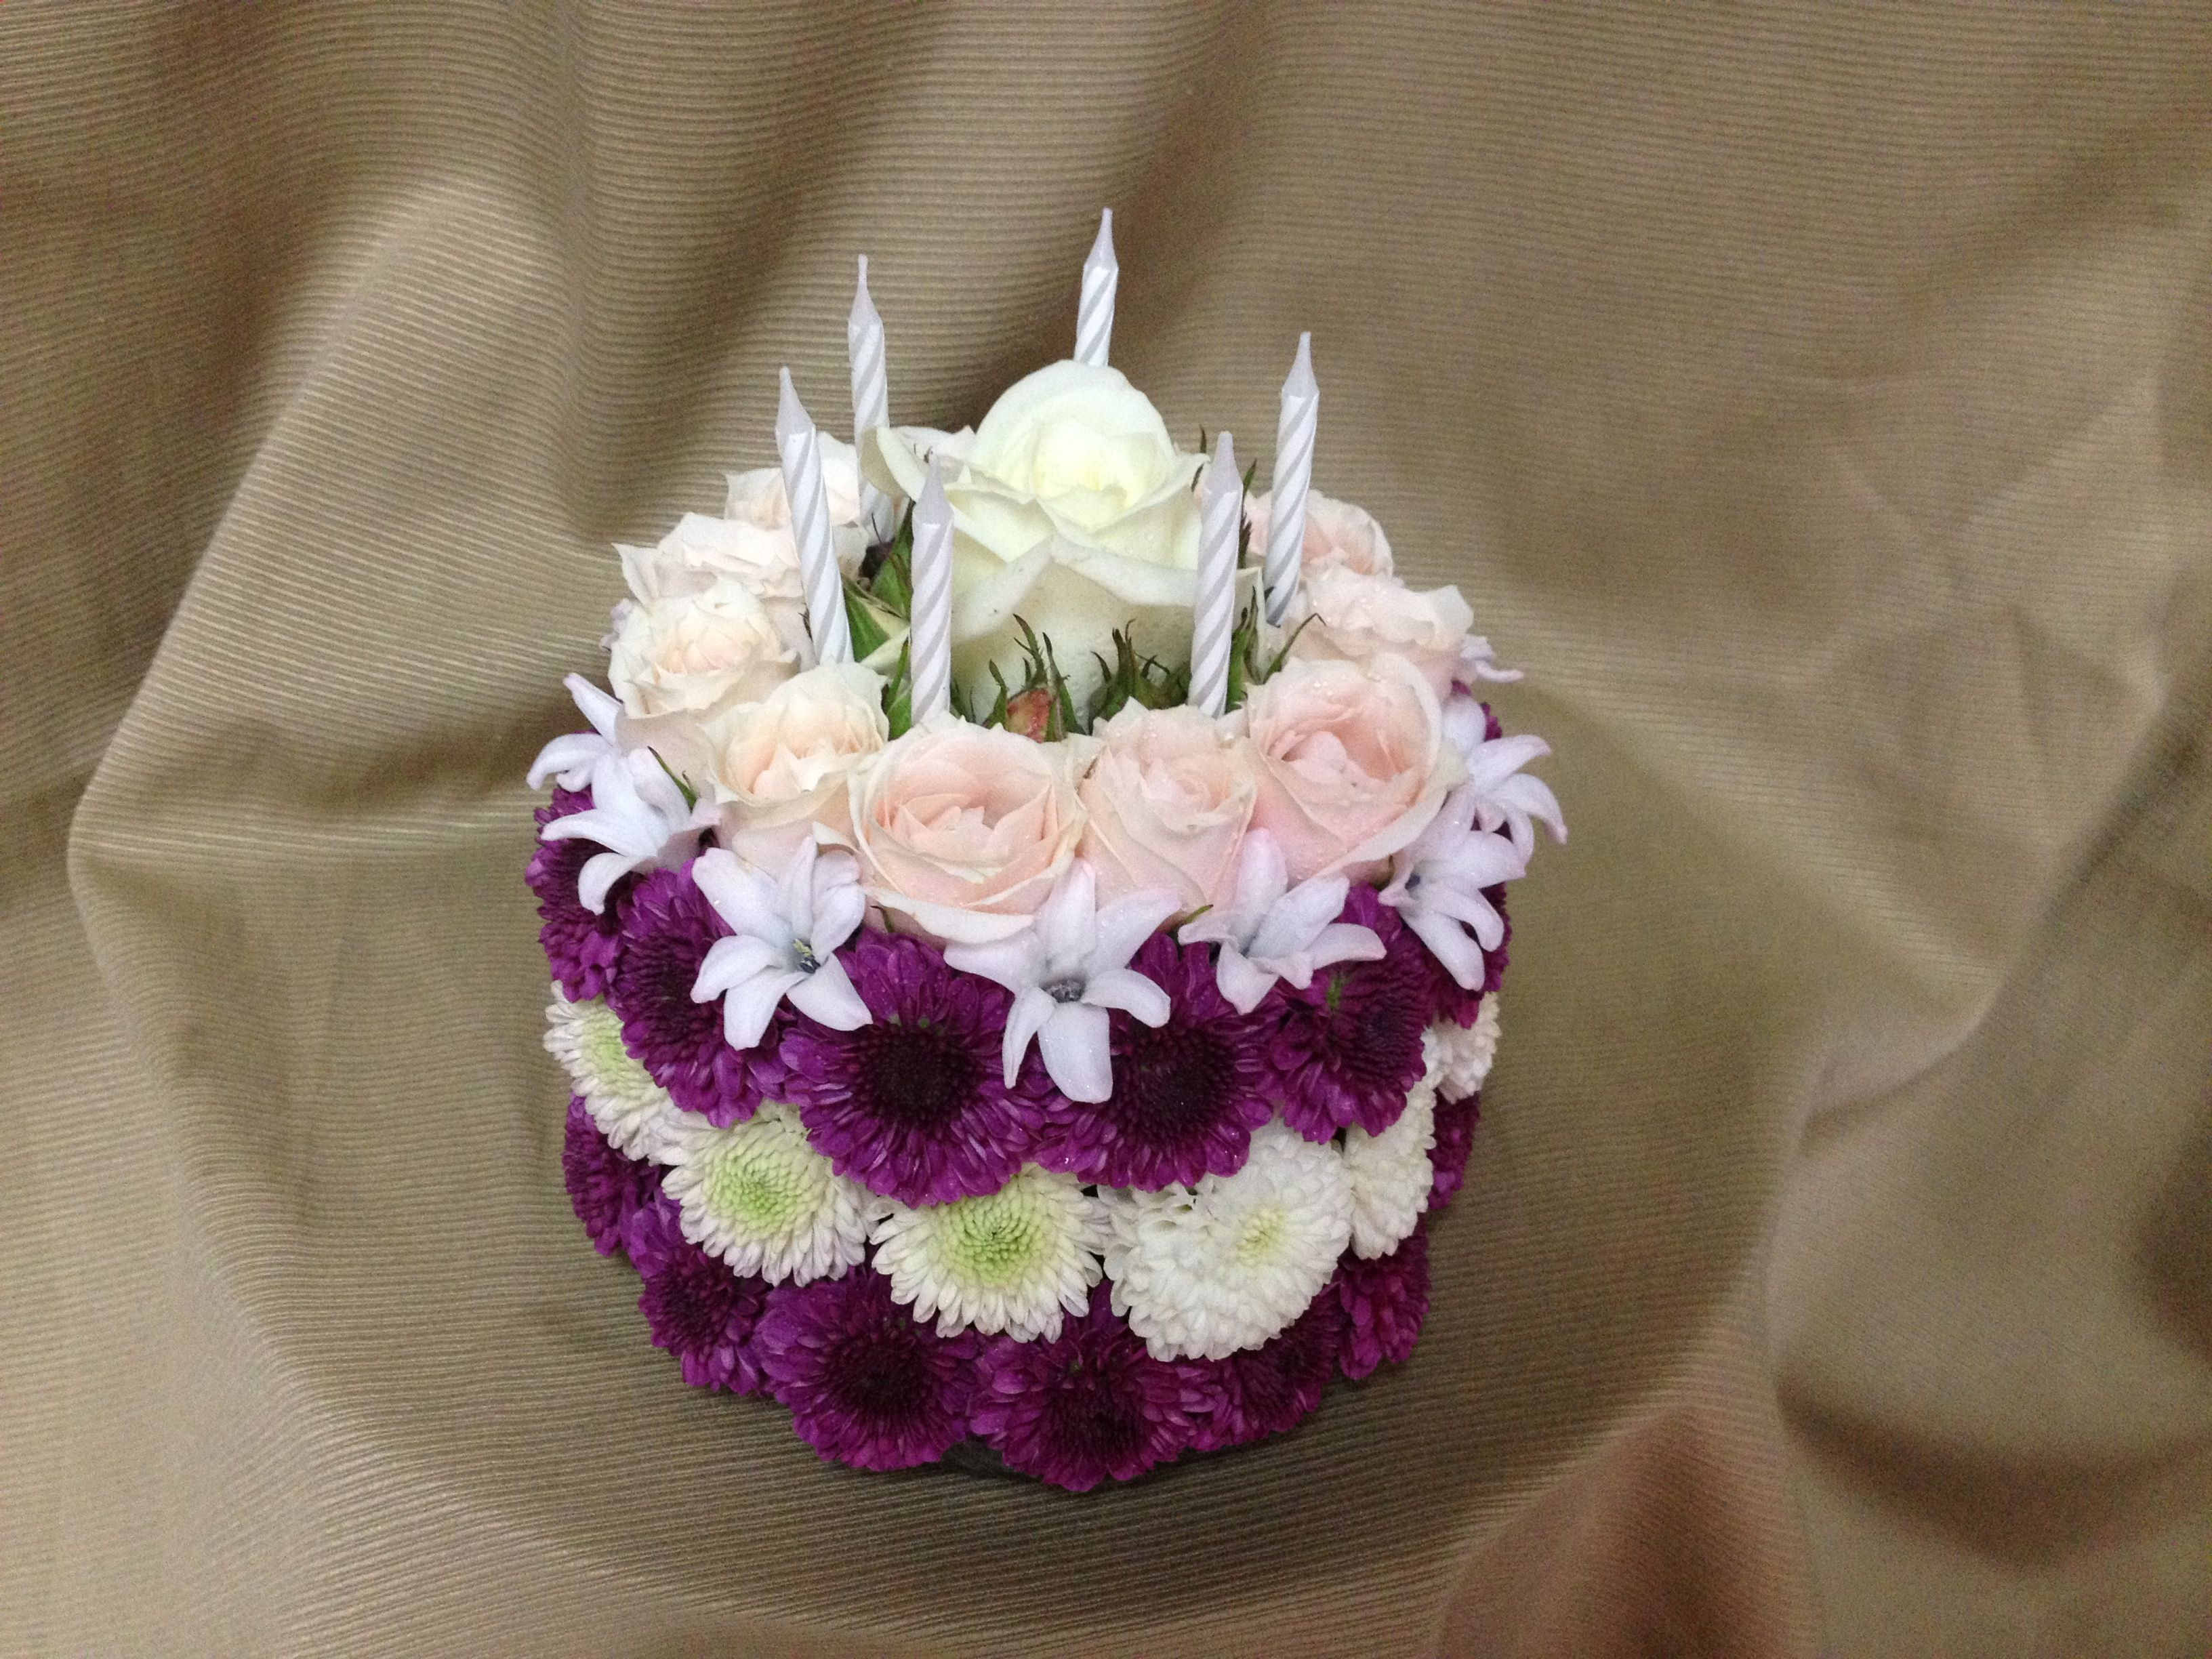 Happy birthday celebrate with a birthday cake made out of flowers happy birthday celebrate with a birthday cake made out of flowers using purple and white button mums purple hyacinth blossoms pink spray roses izmirmasajfo